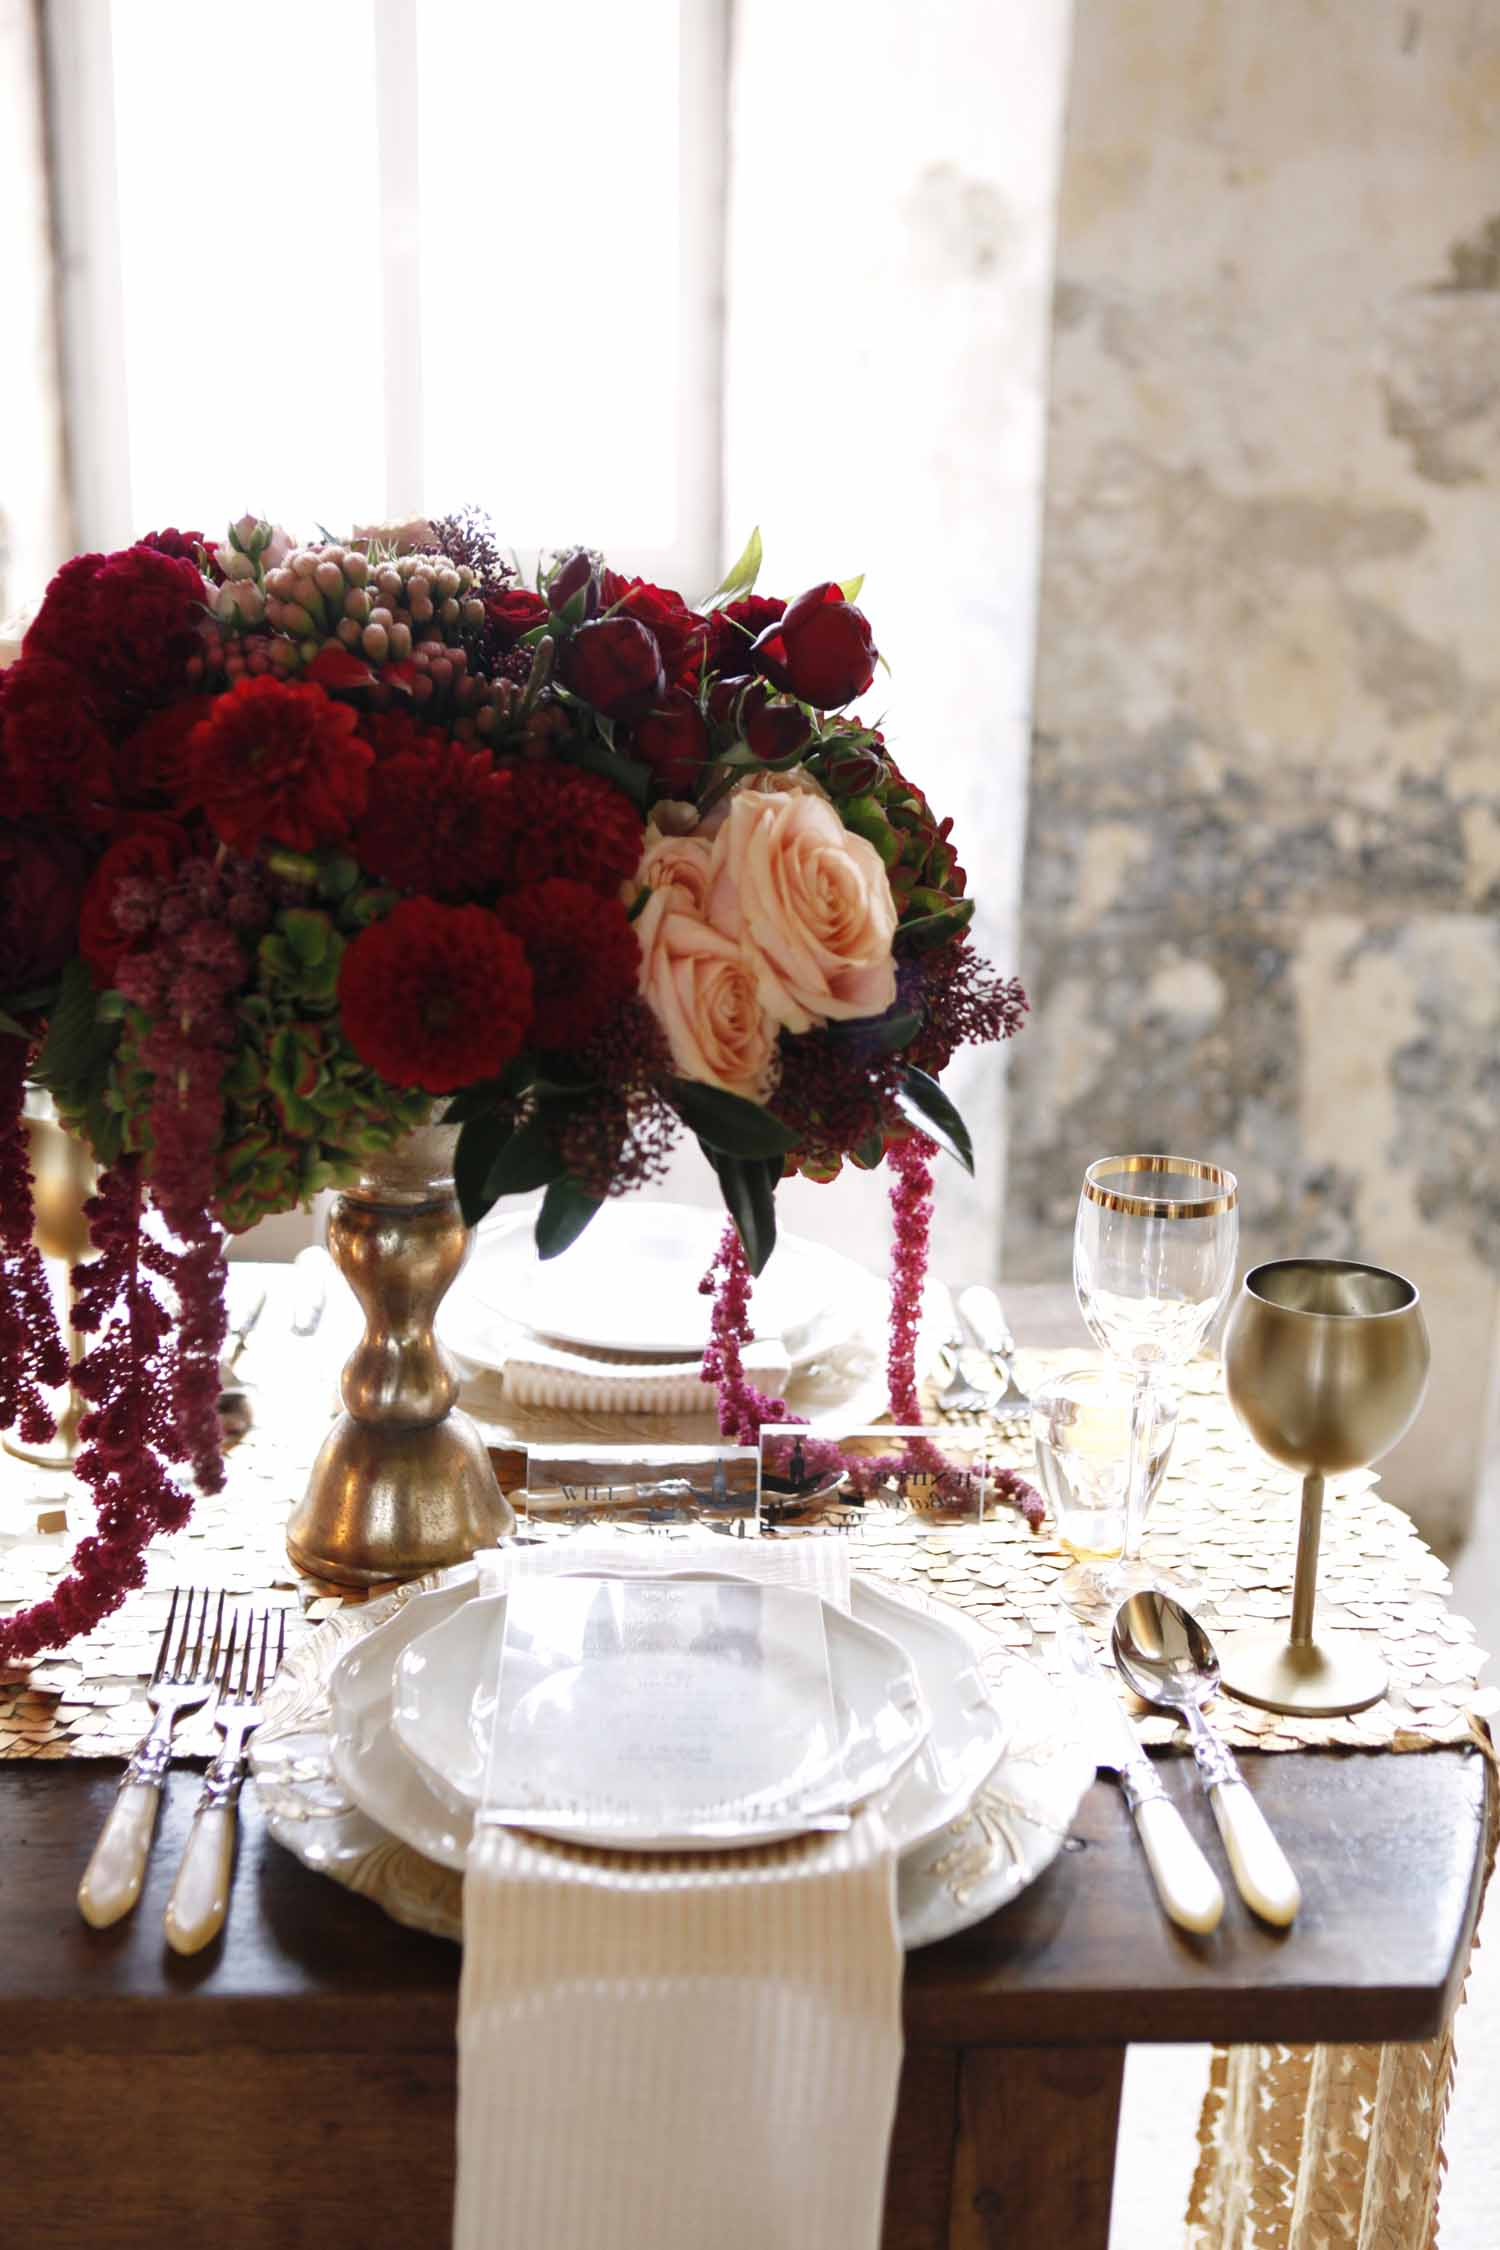 Burgundy and blush centerpiece in gold goblet for Wedding Style Shoot in Kloster Eberbach, Germany, designed by Flora Nova Design, Seattle